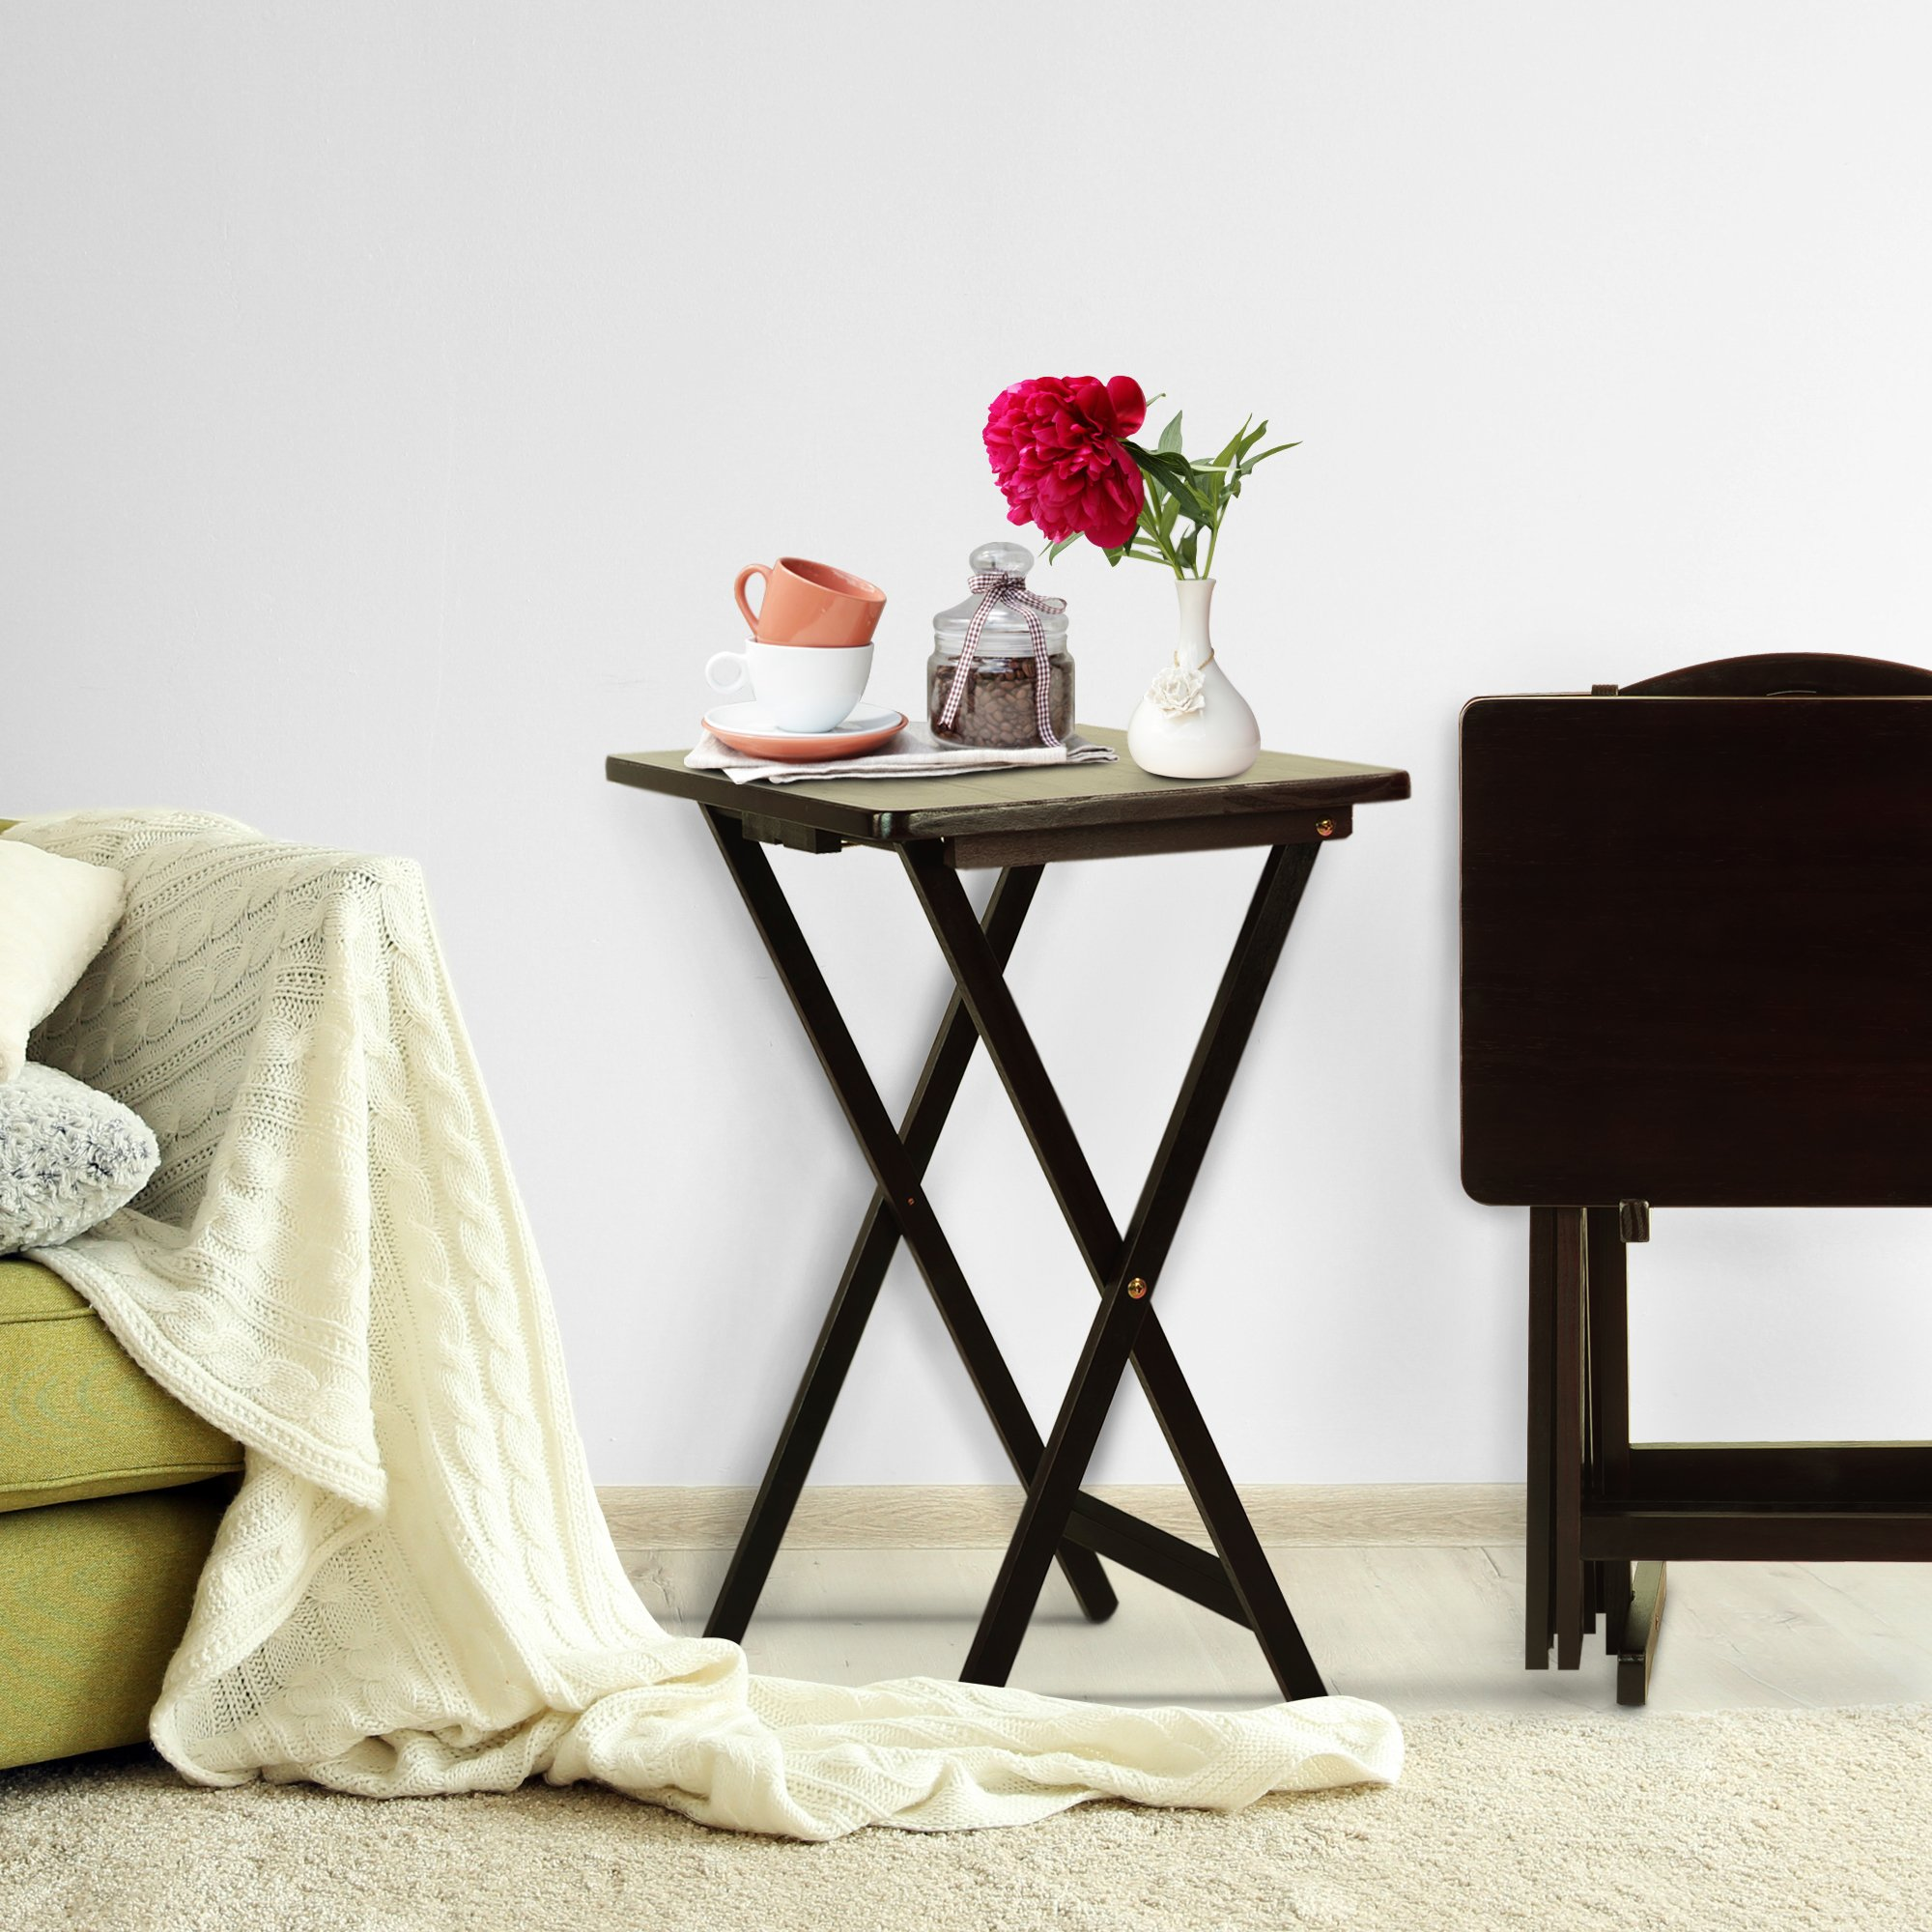 Casual Home 660-44 5-piece Tray Table Set-Espresso by Casual Home (Image #5)